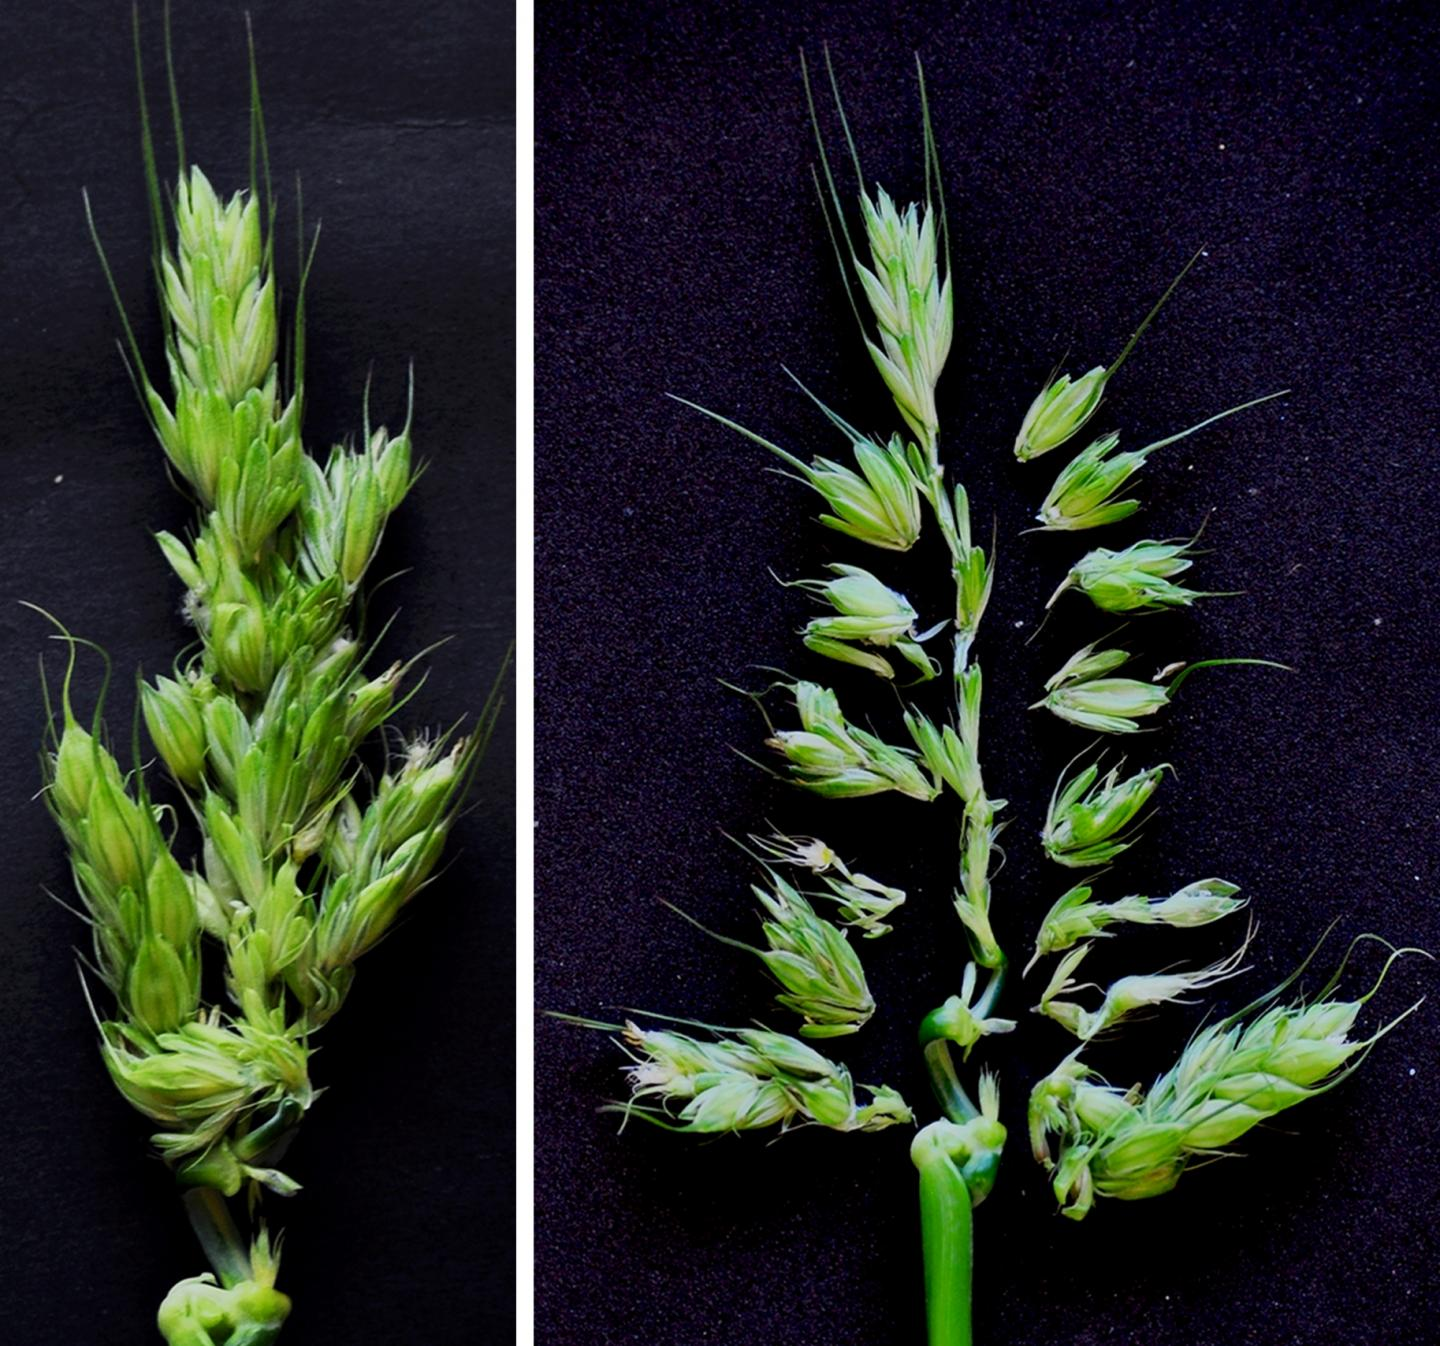 Branched barley spike